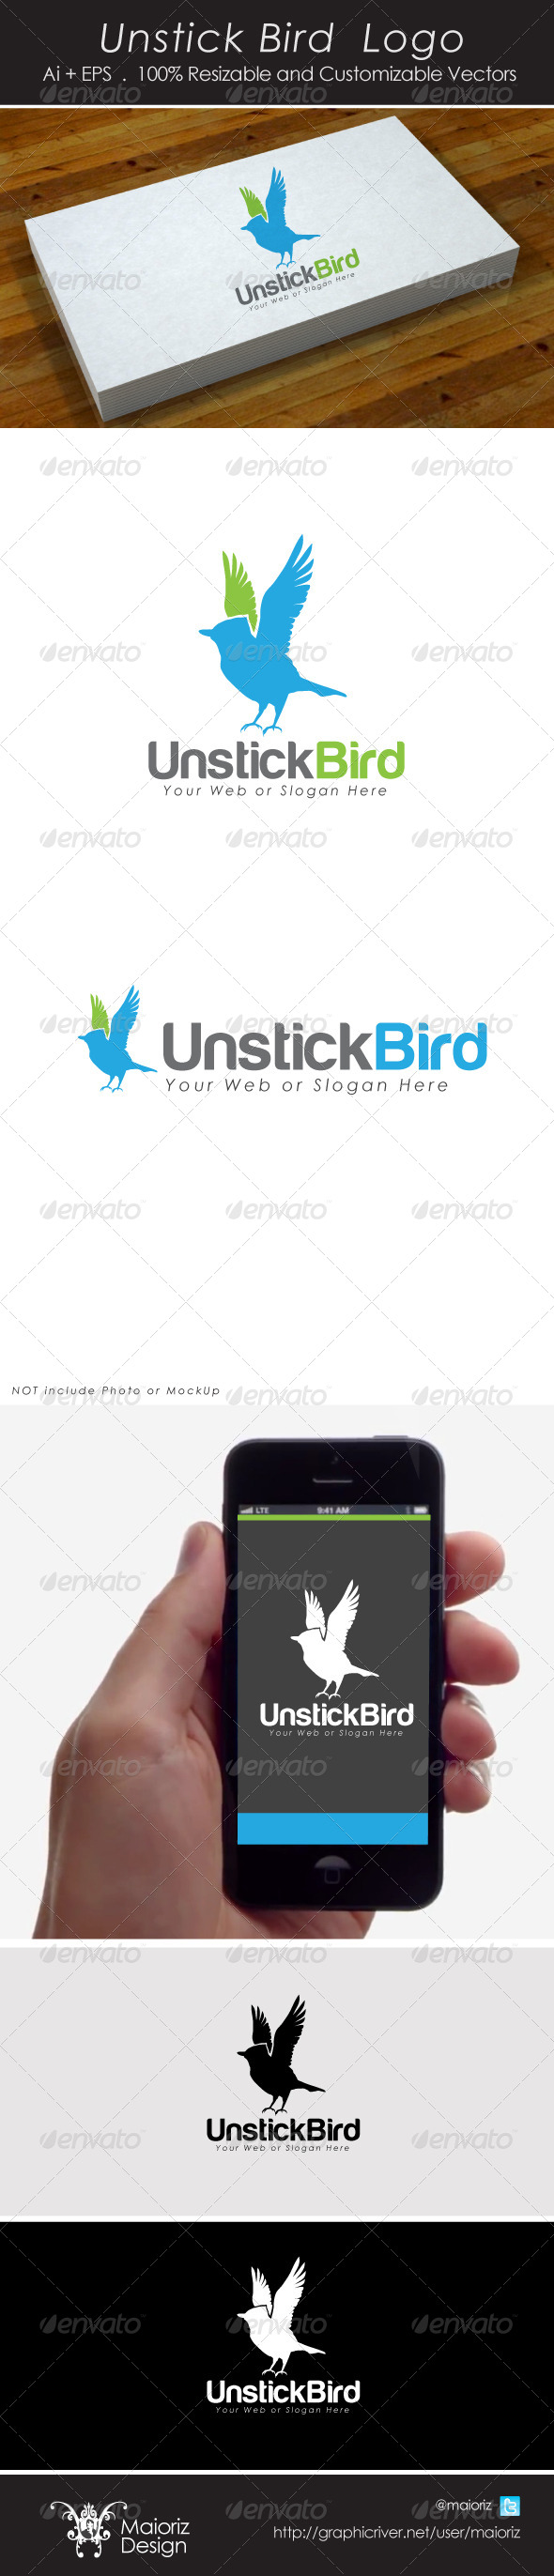 Unstick Bird Logo - Animals Logo Templates